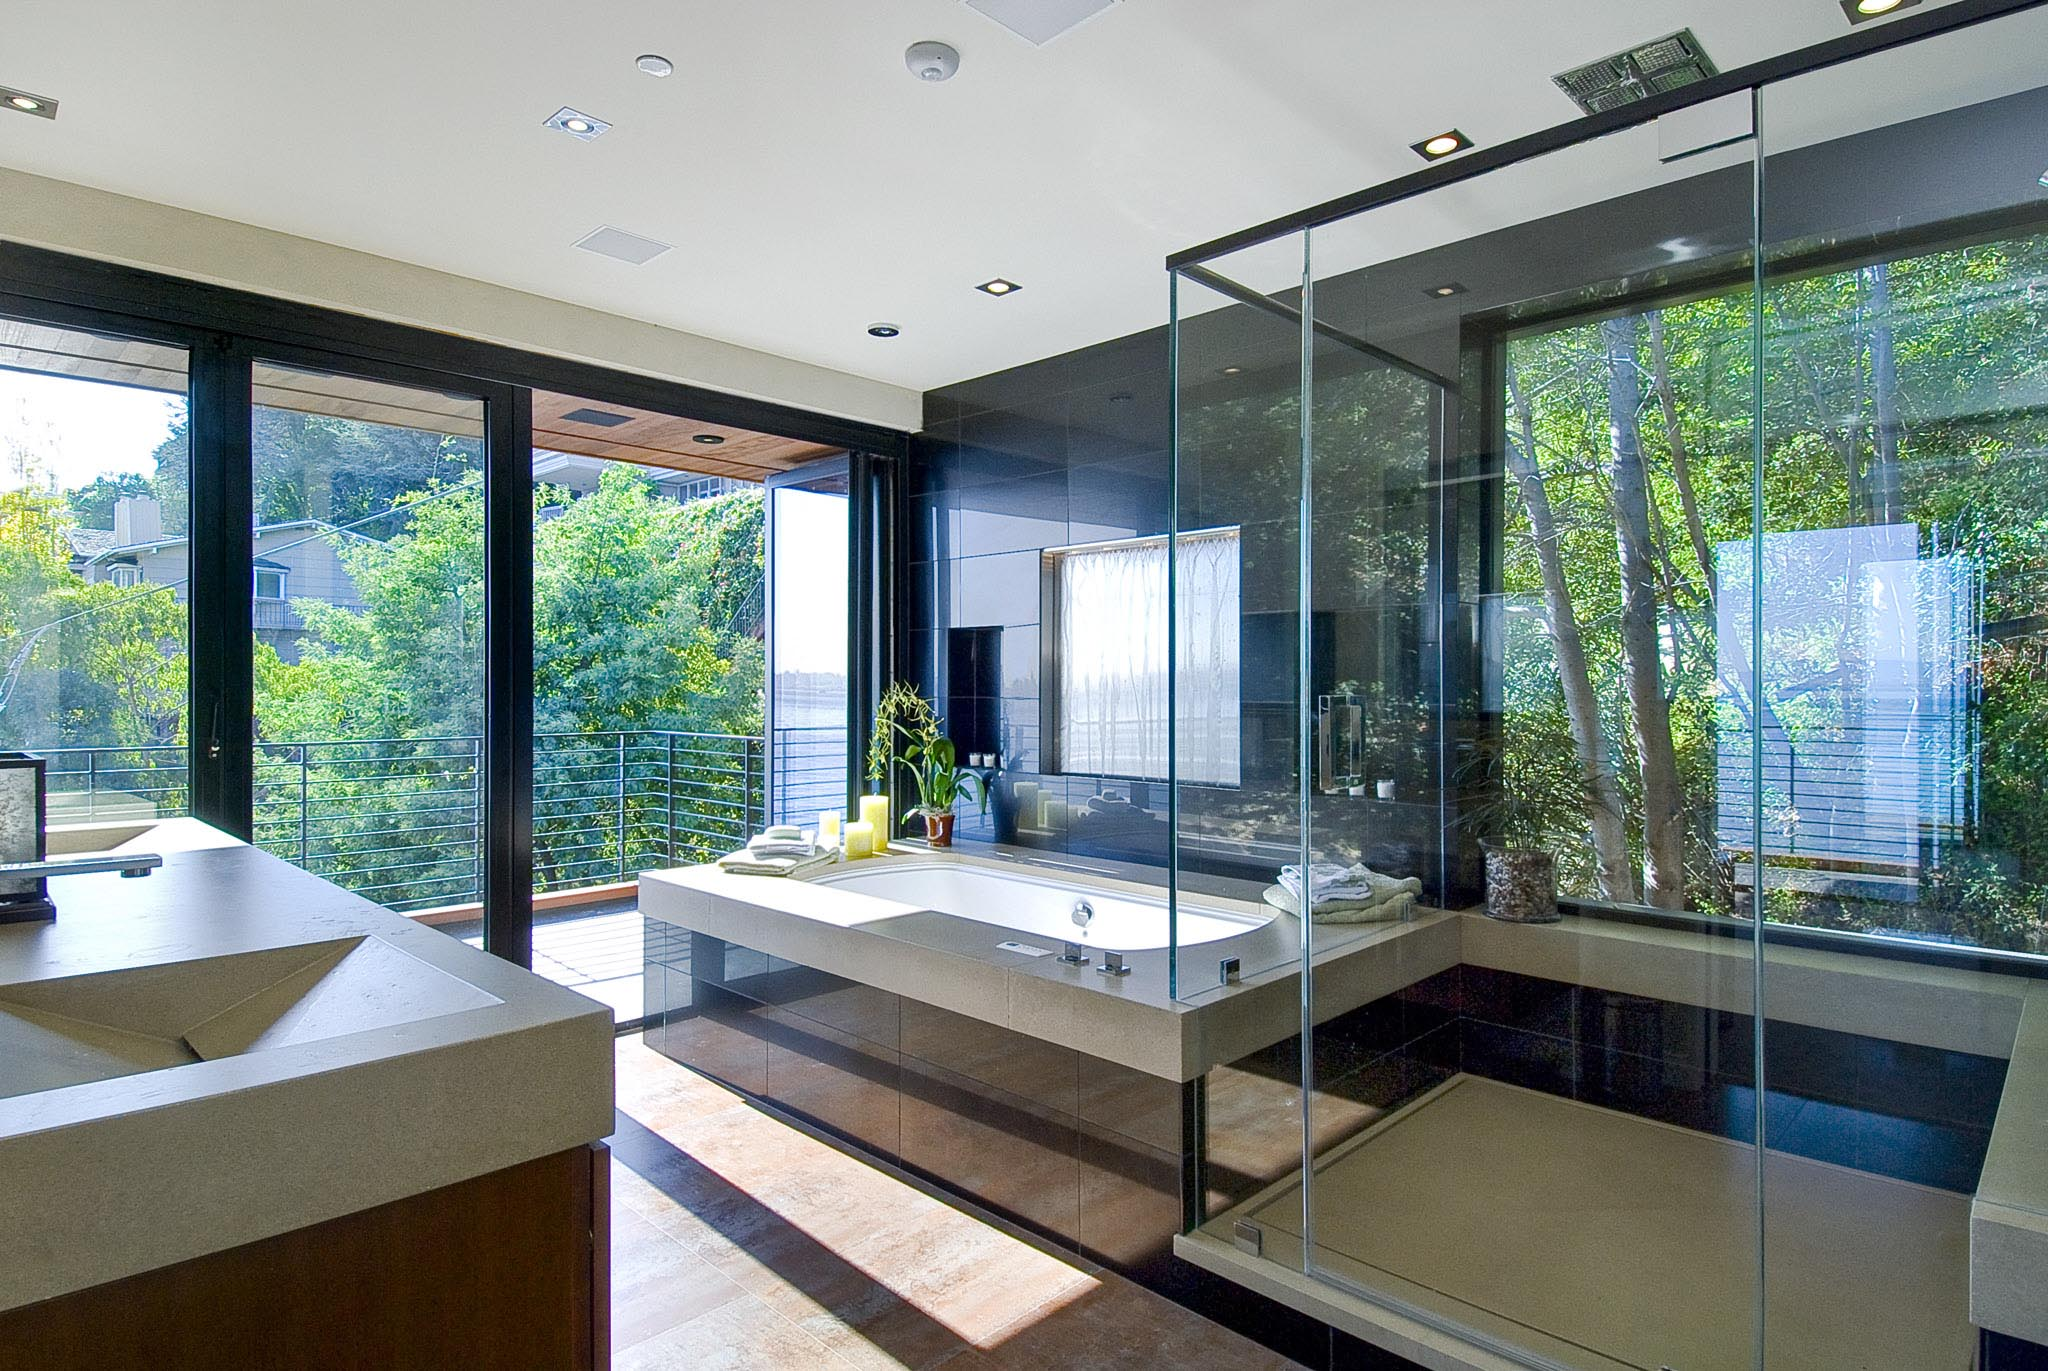 spa-like bathroom with folding glass wall open to freshair and natural daylight